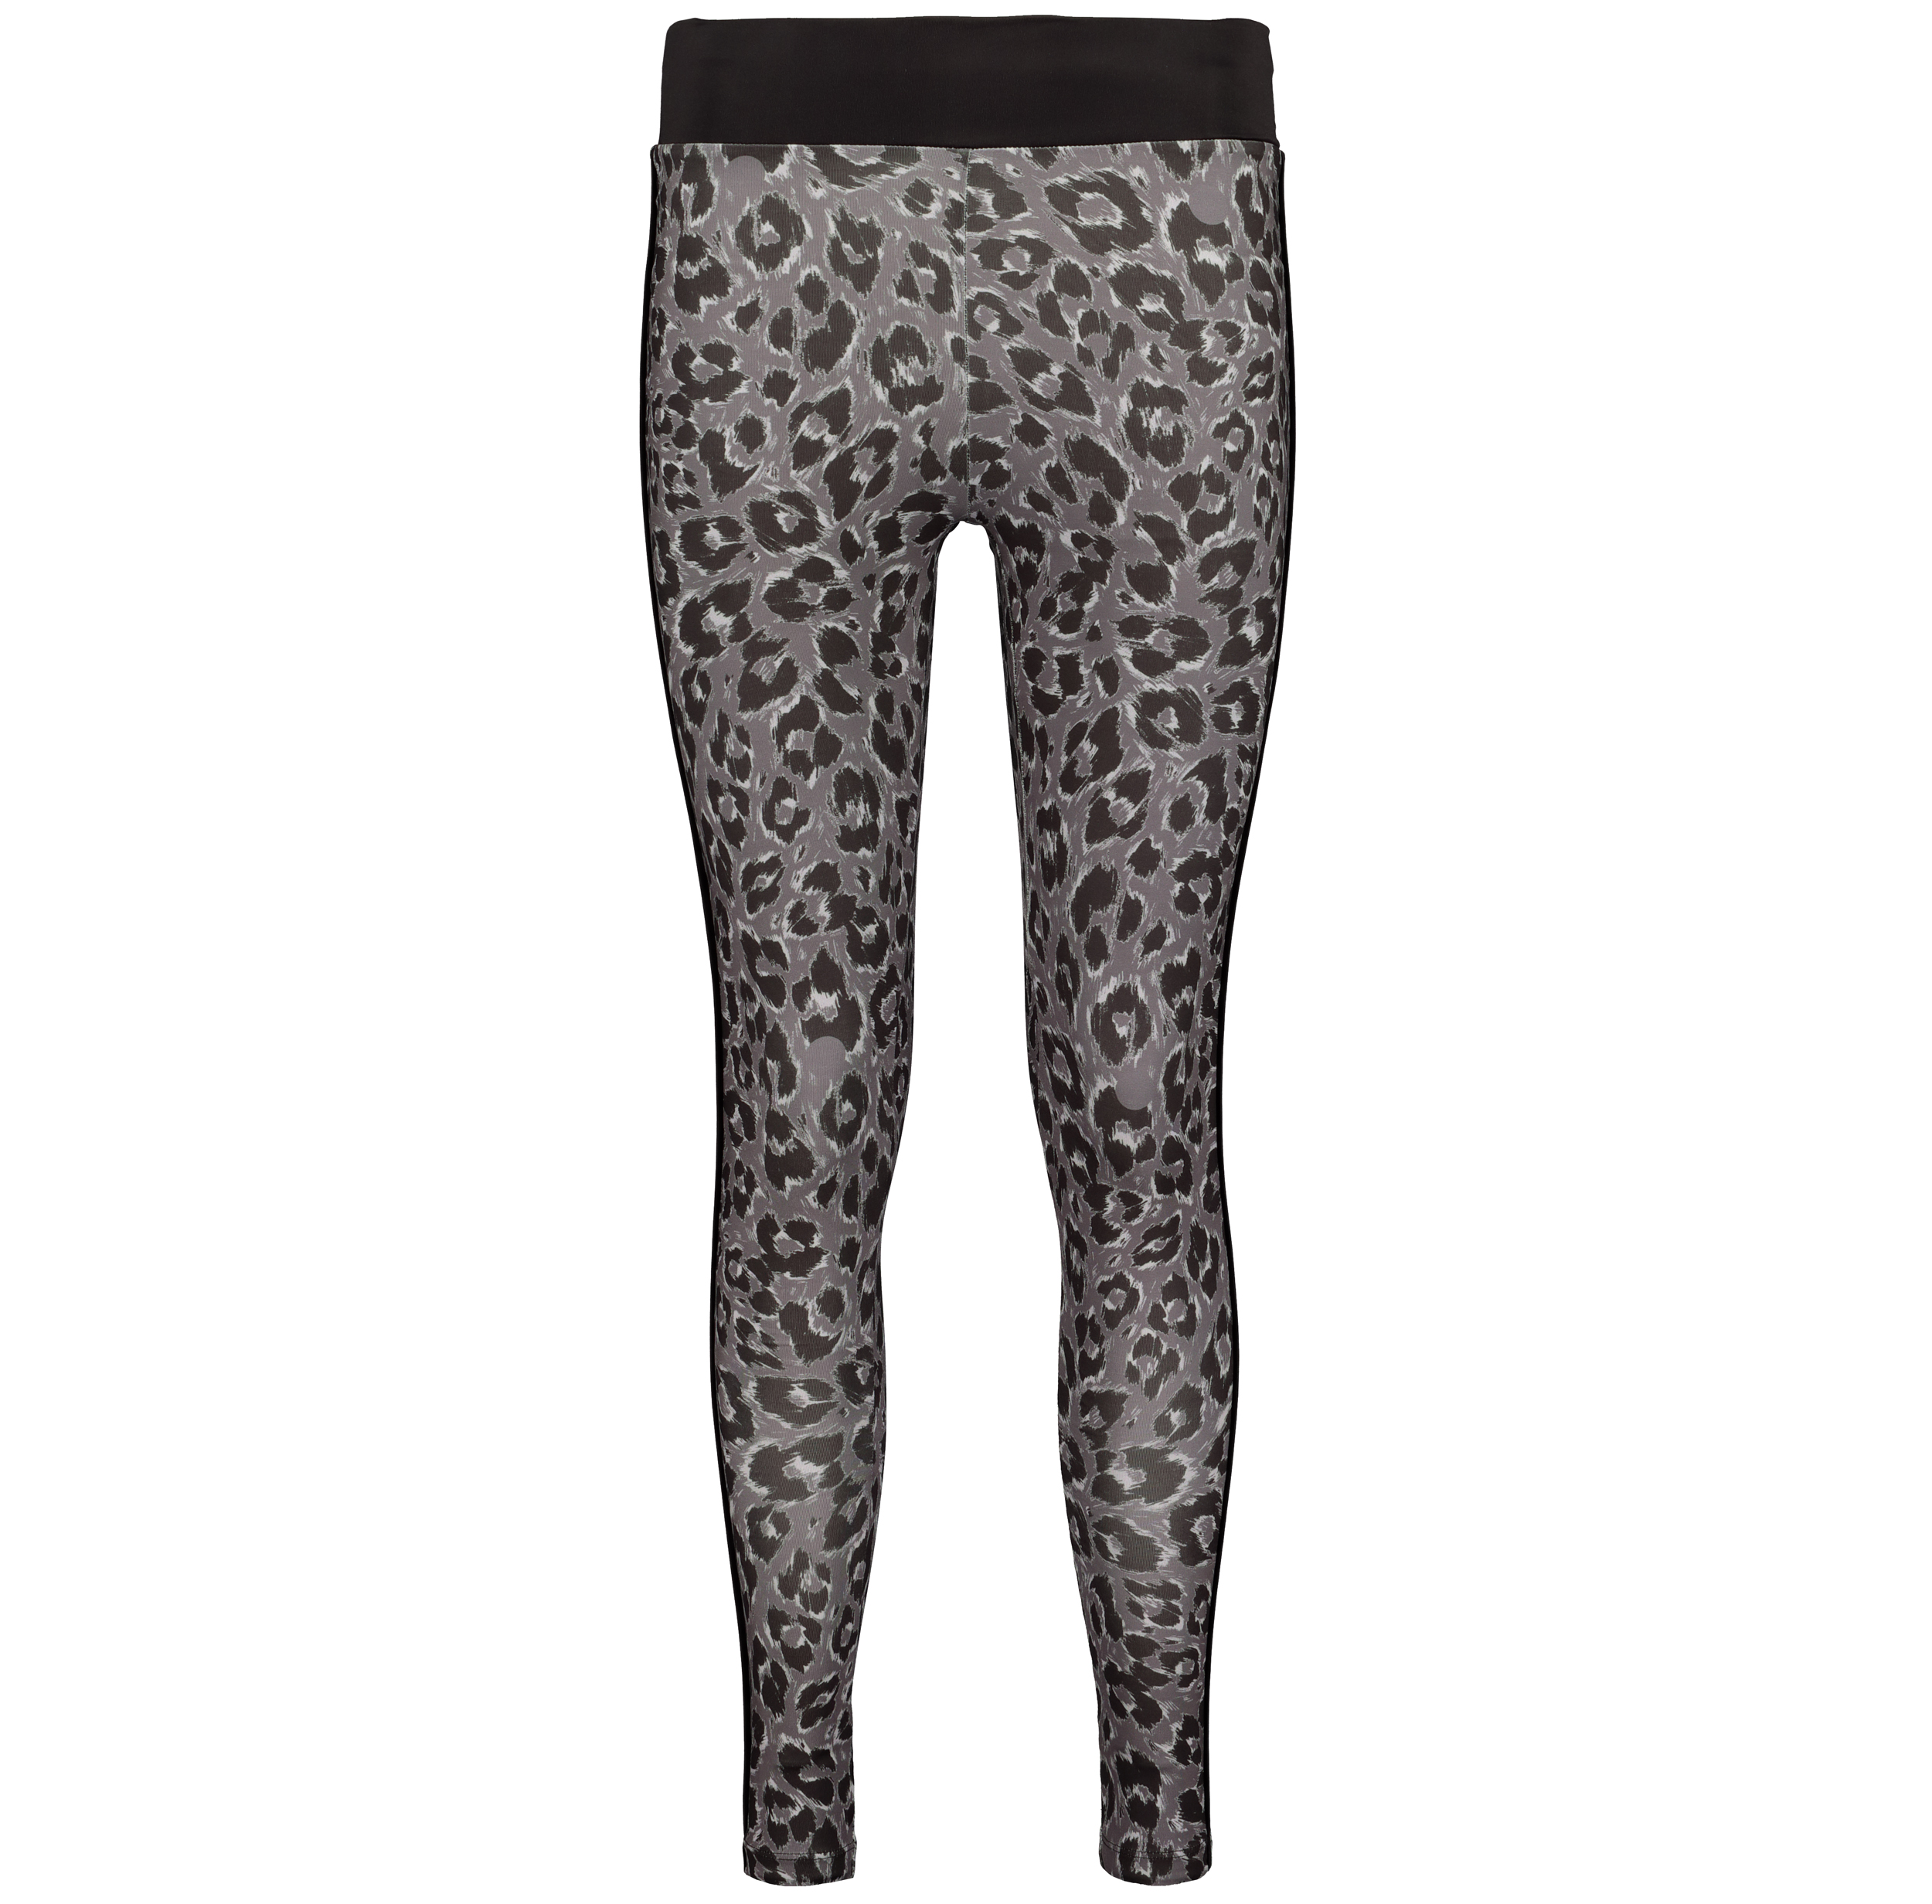 F&F at Tesco Leopard Print Leggings